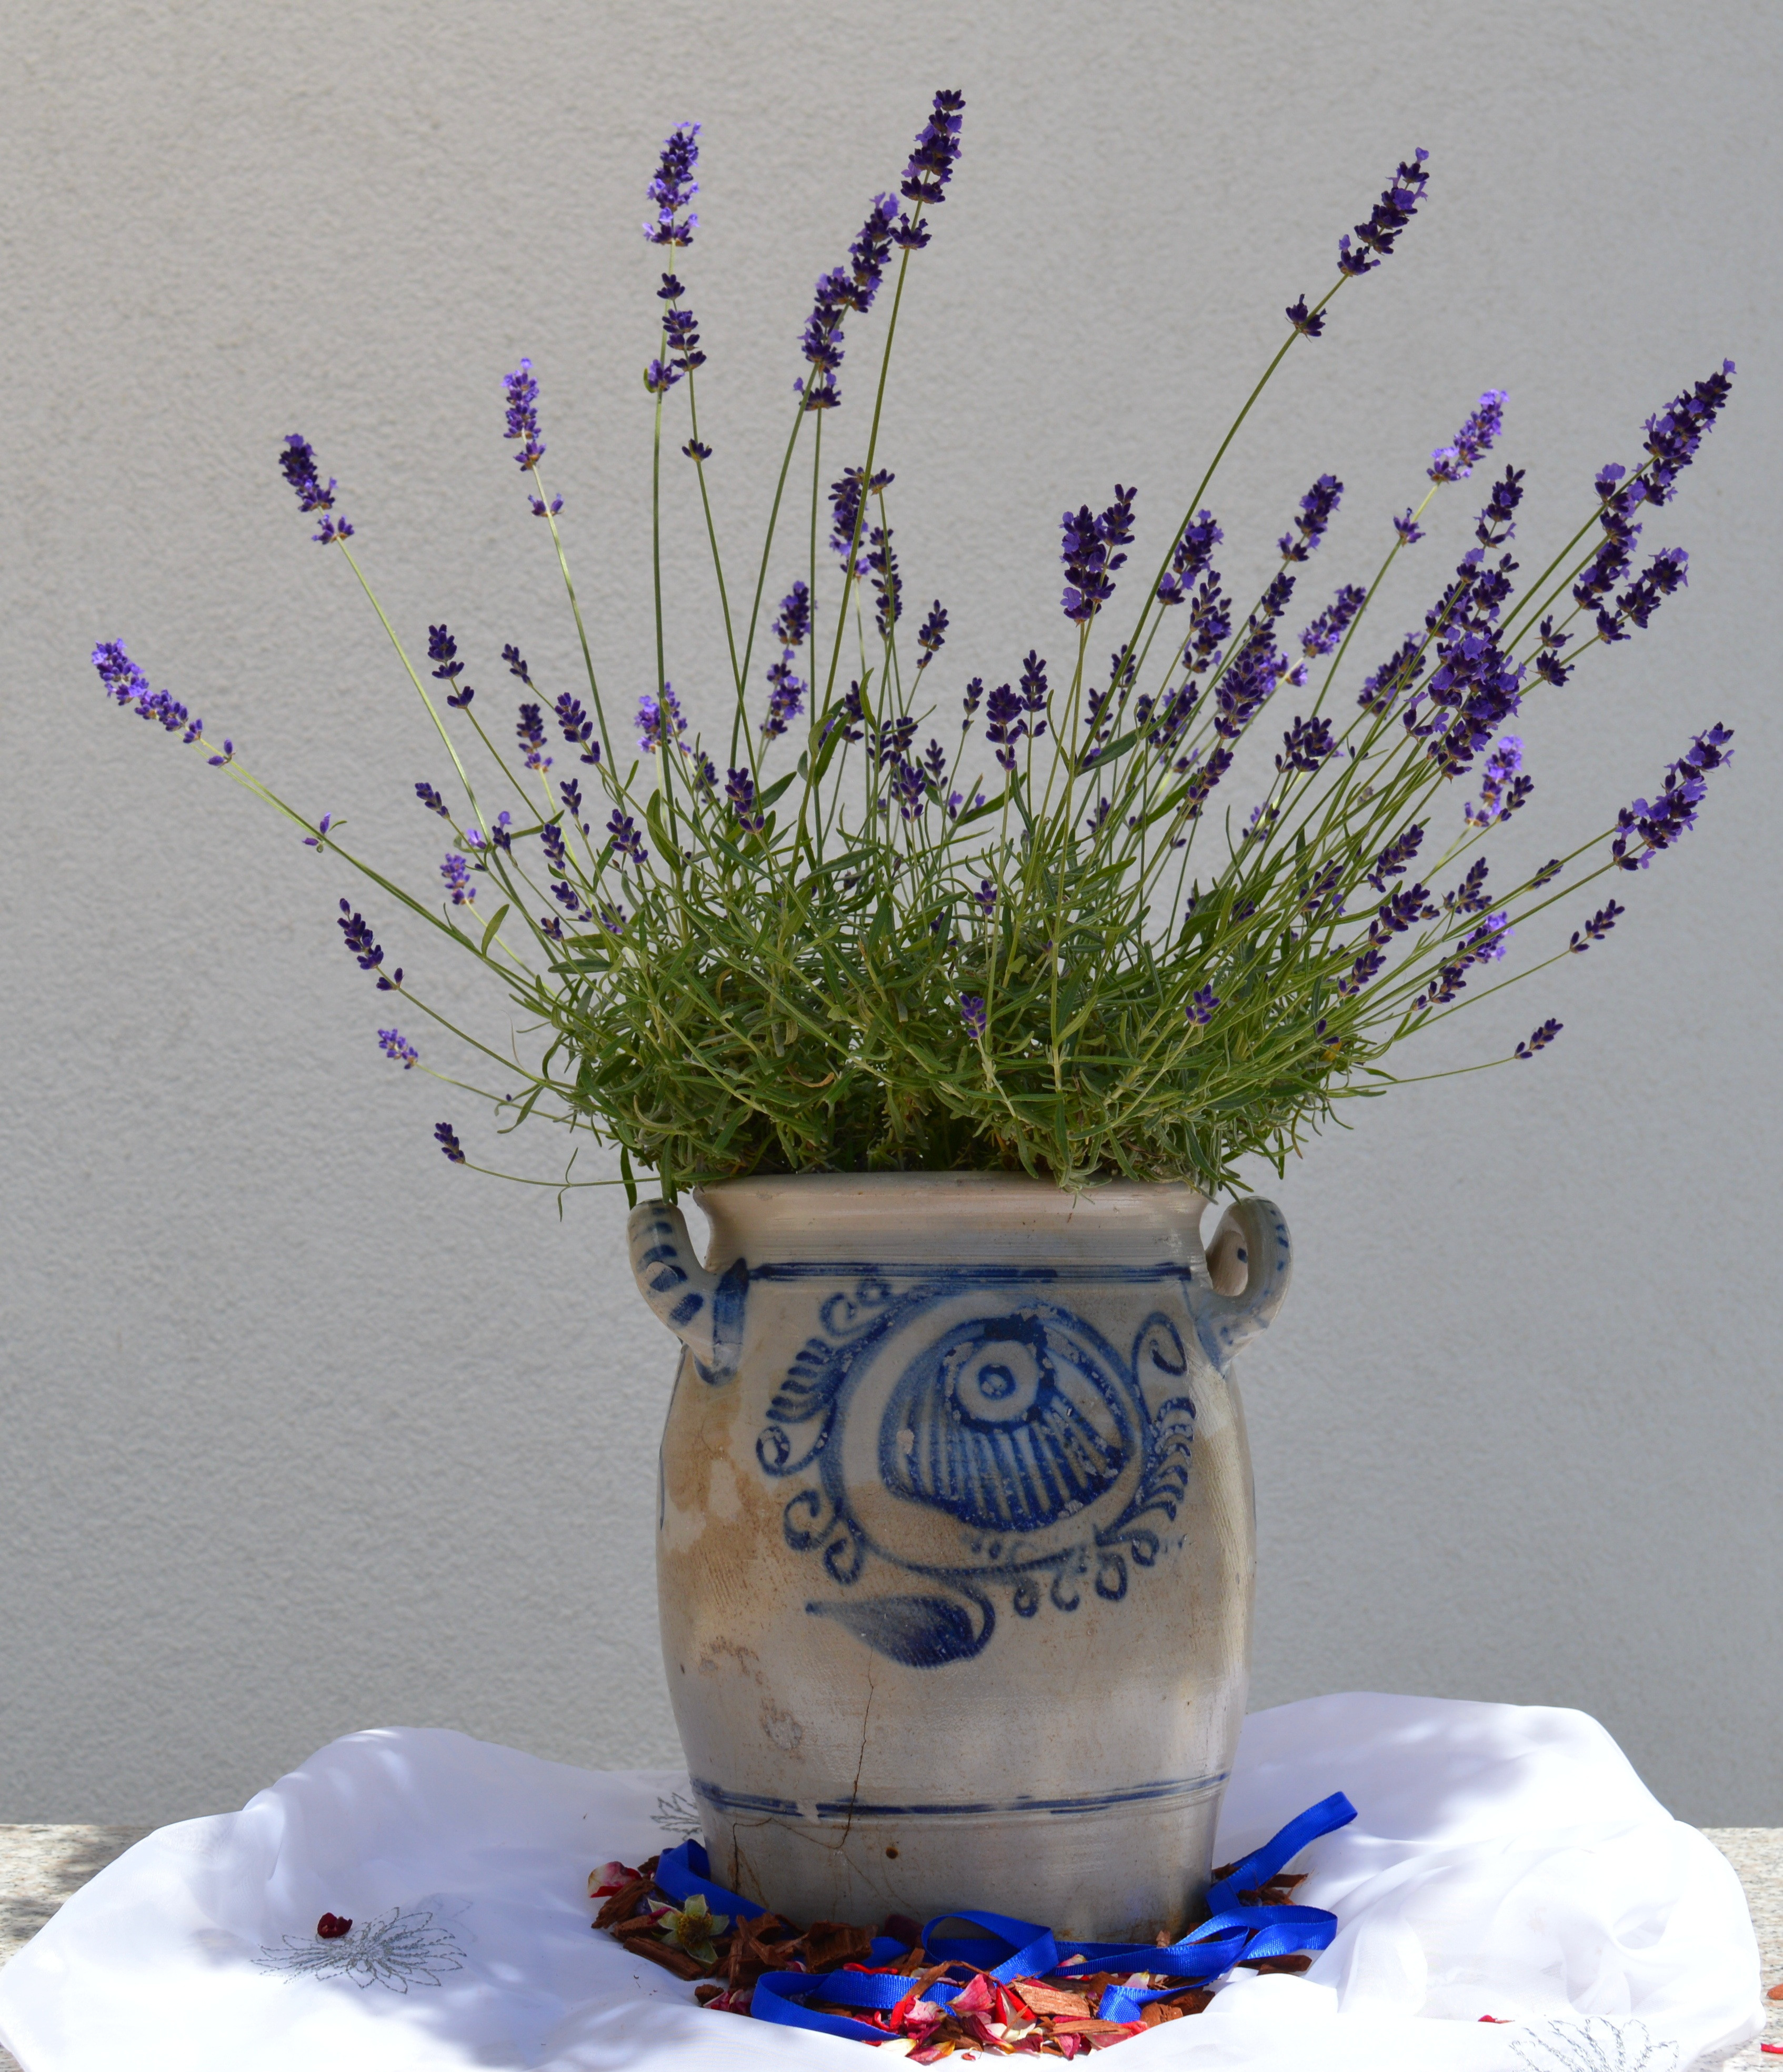 Ikebana Vase Pottery Of Free Images Plant Purple Pot Ceramic Blue Lavender Weathered for Plant Flower Purple Pot Ceramic Blue Lavender Weathered Grey Art Painted Earthenware Floristry Flower Bouquet Ikebana